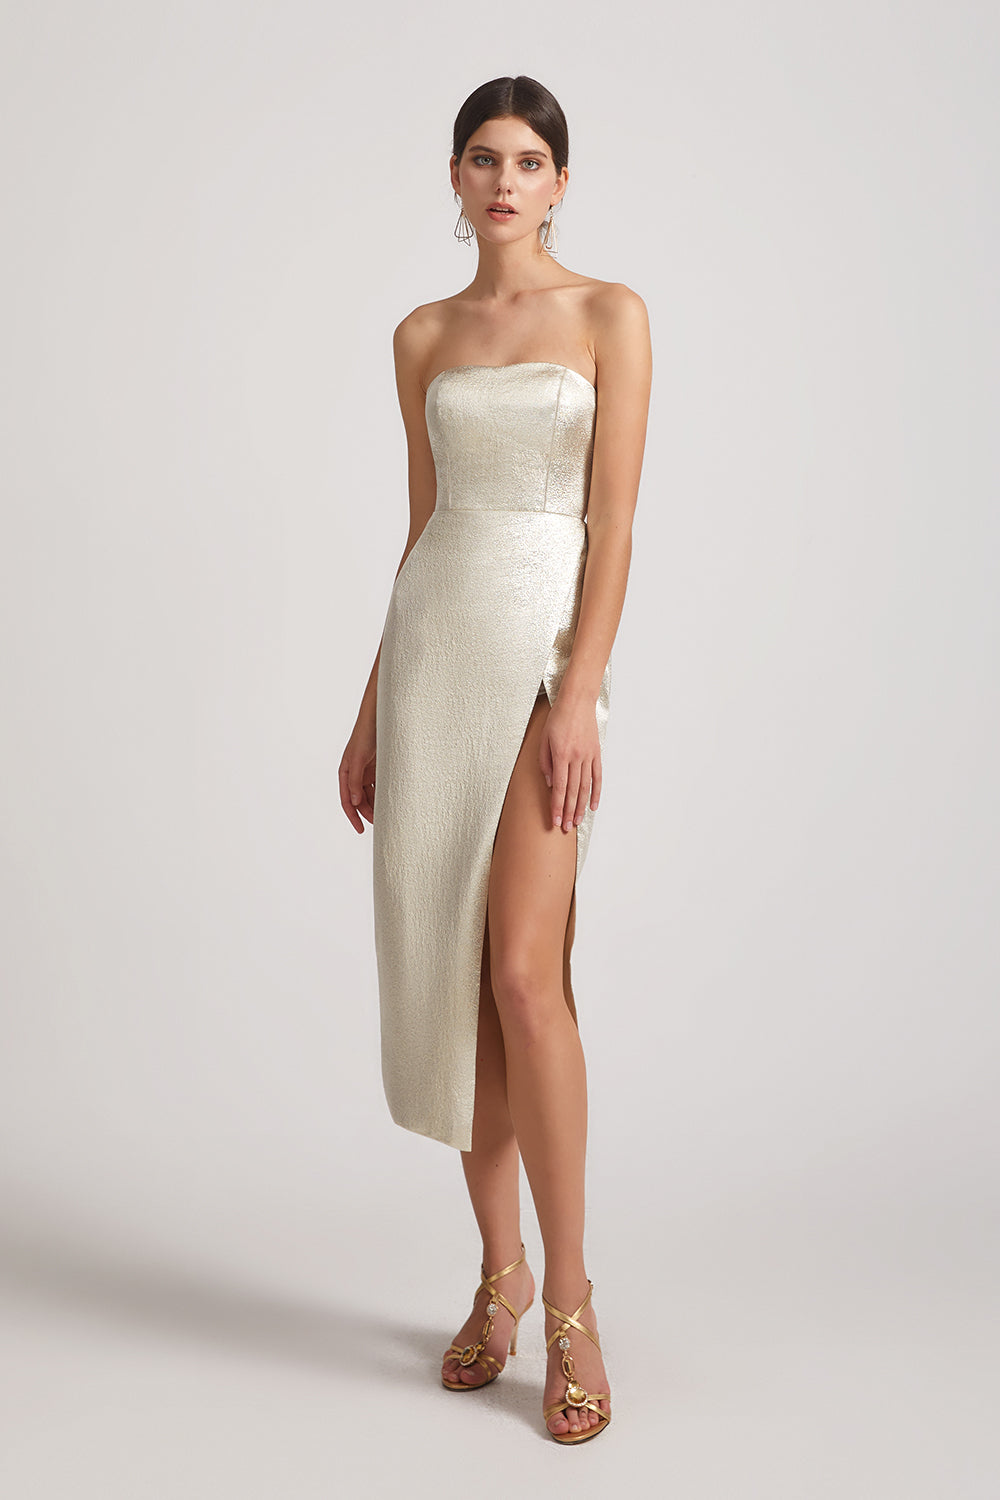 champagne strapless sheath bridesmaid dresses